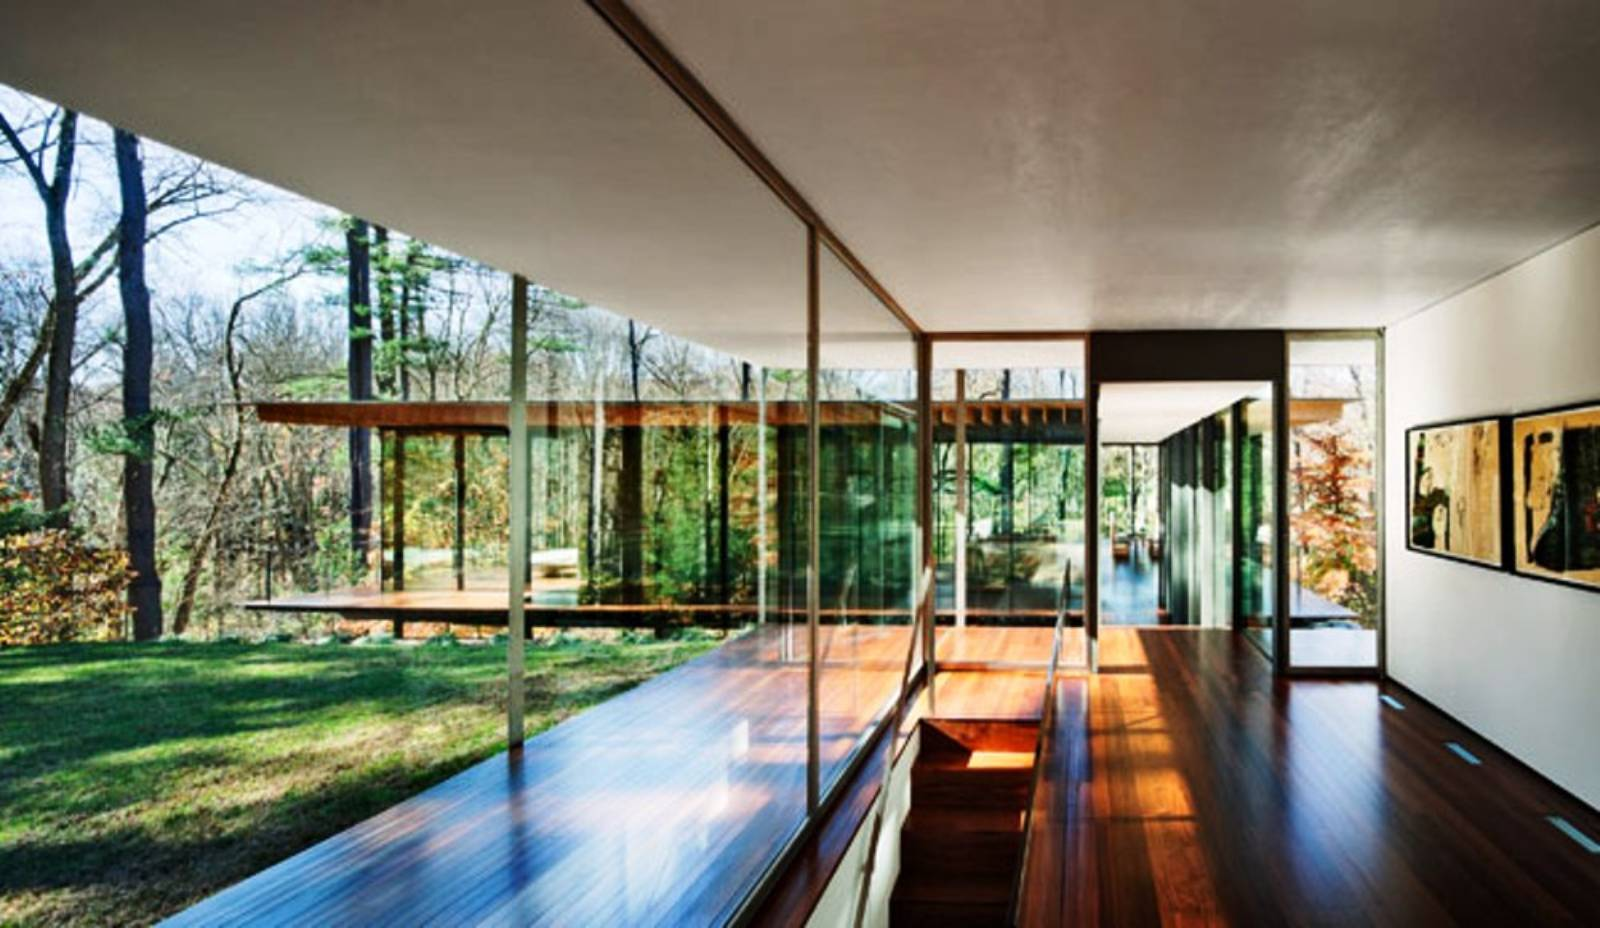 architecture now and The Future GLASSWOOD HOUSE BY KENGO KUMA